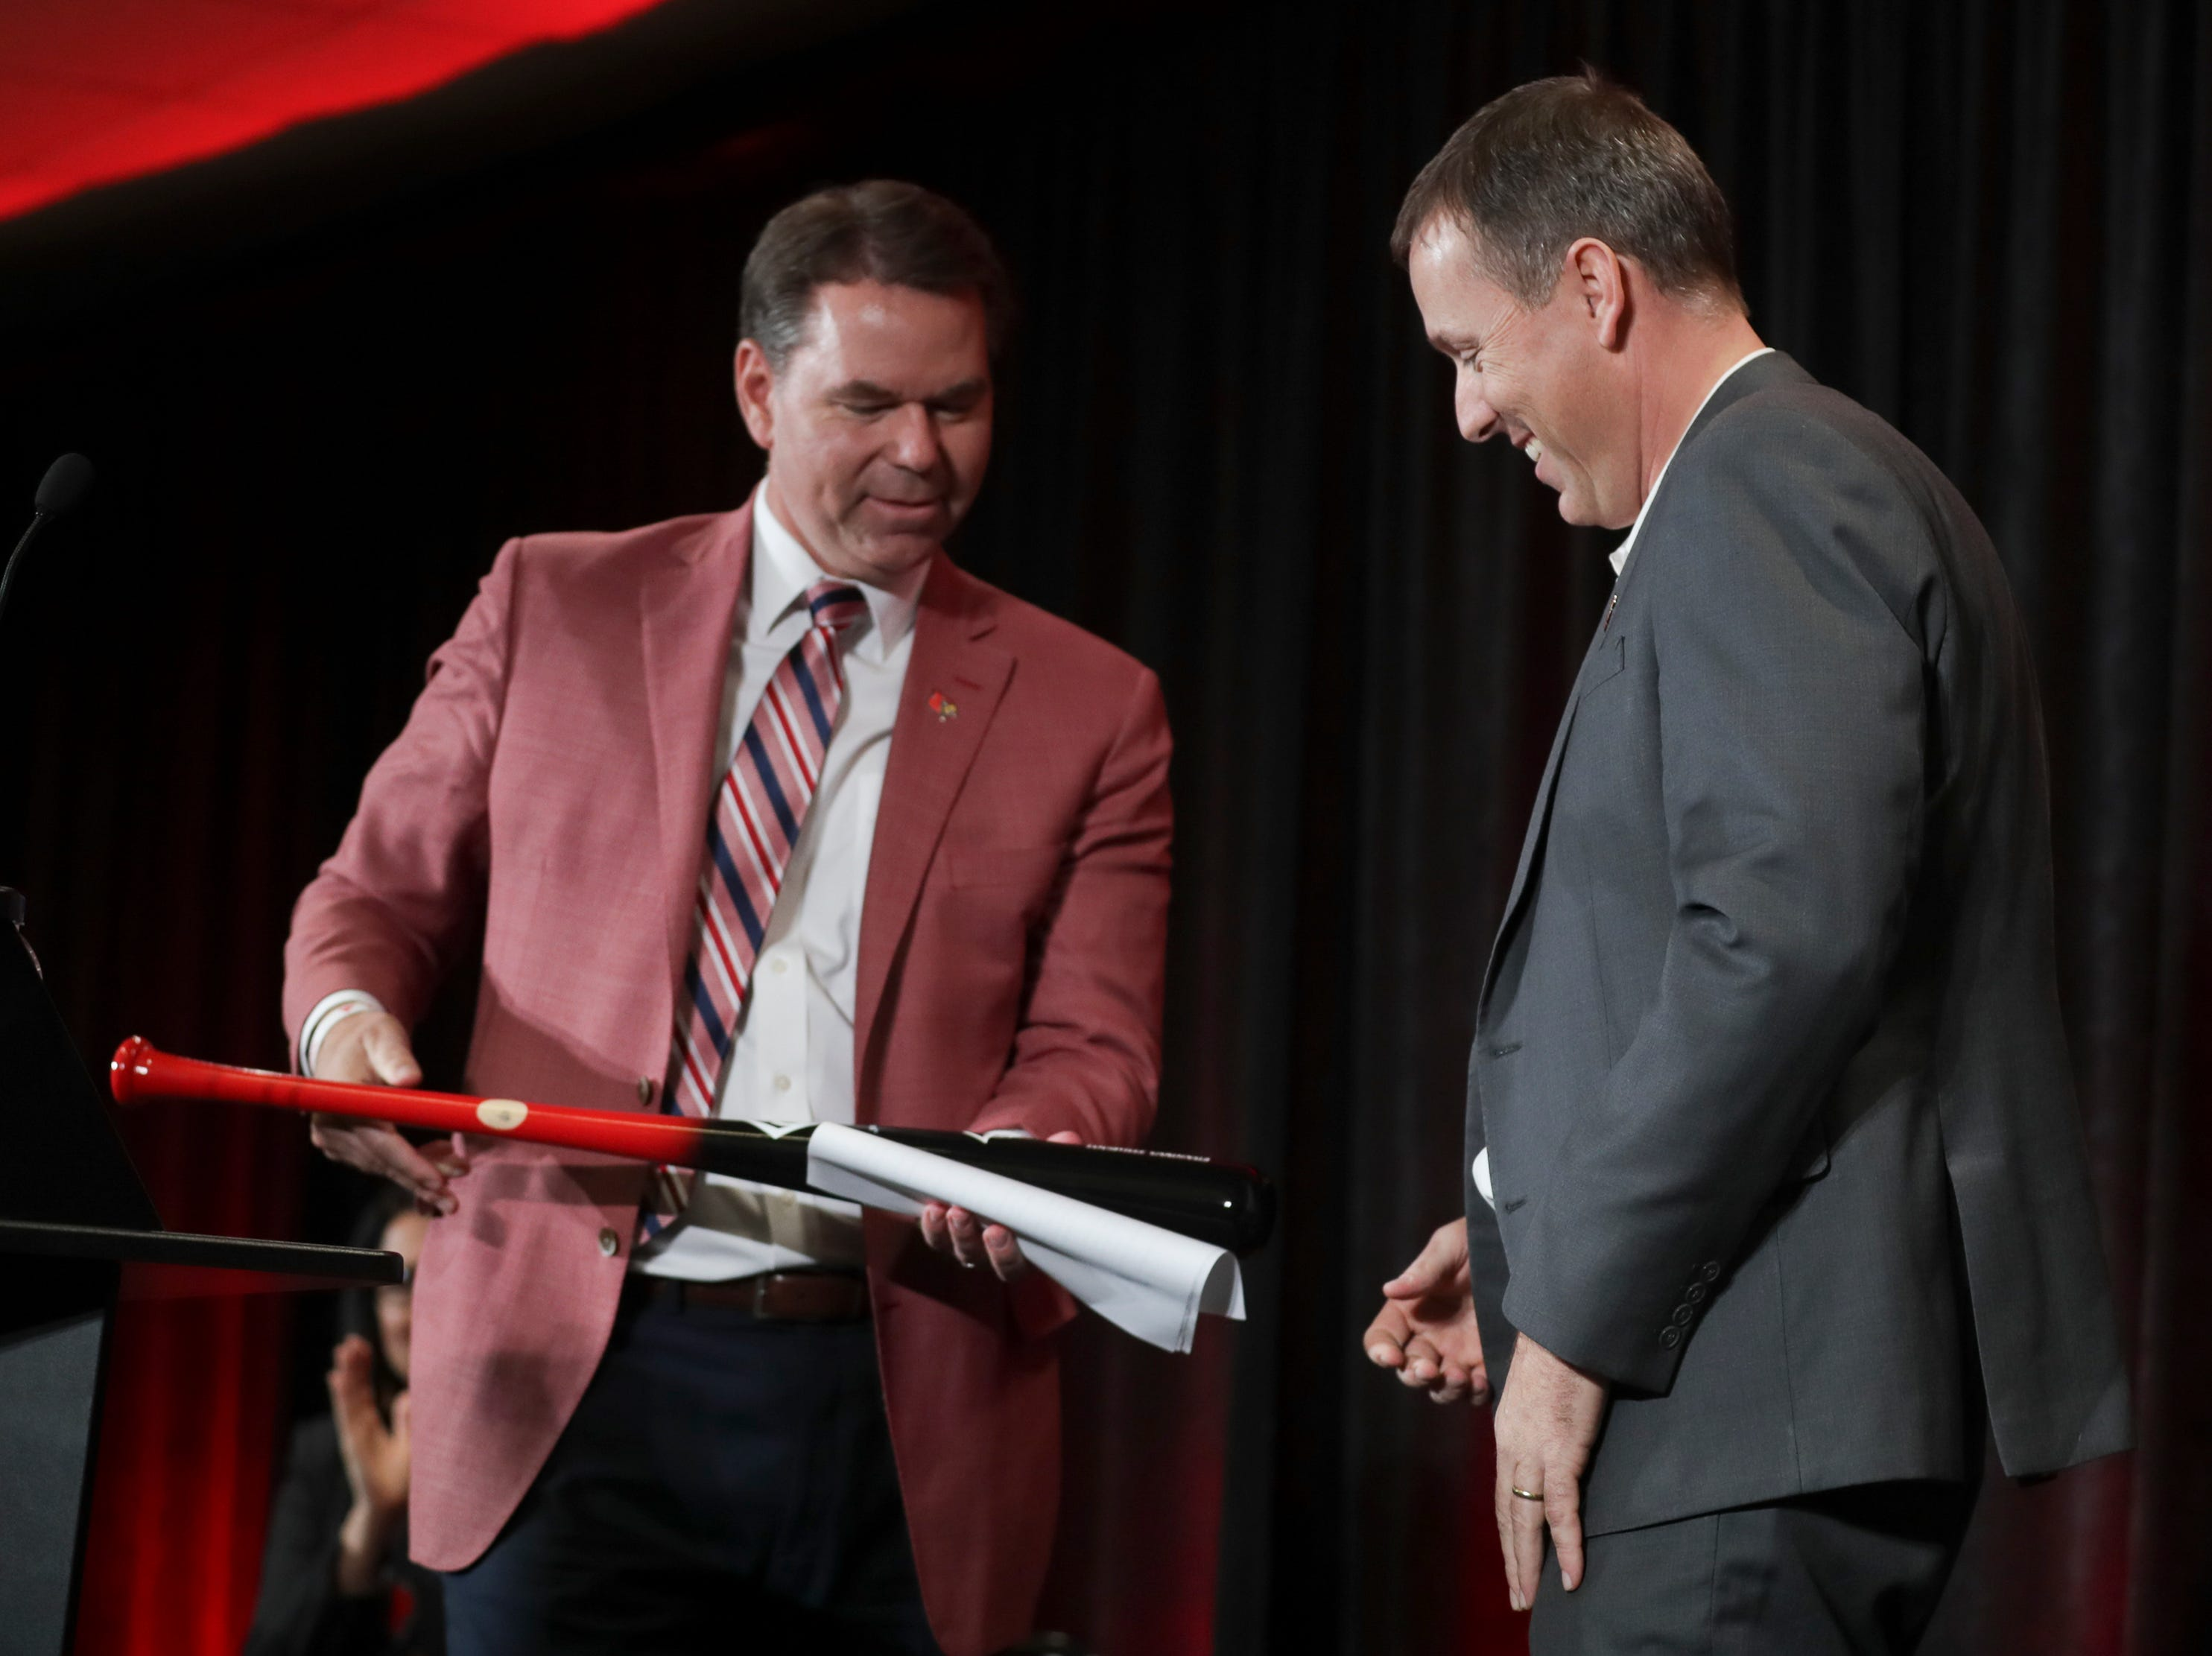 Coach Scott Satterfield receives a Louisville Slugger from UofL Athletic Director Vince Tyra as Satterfield is named the new head coach at Louisville on Tuesday evening.